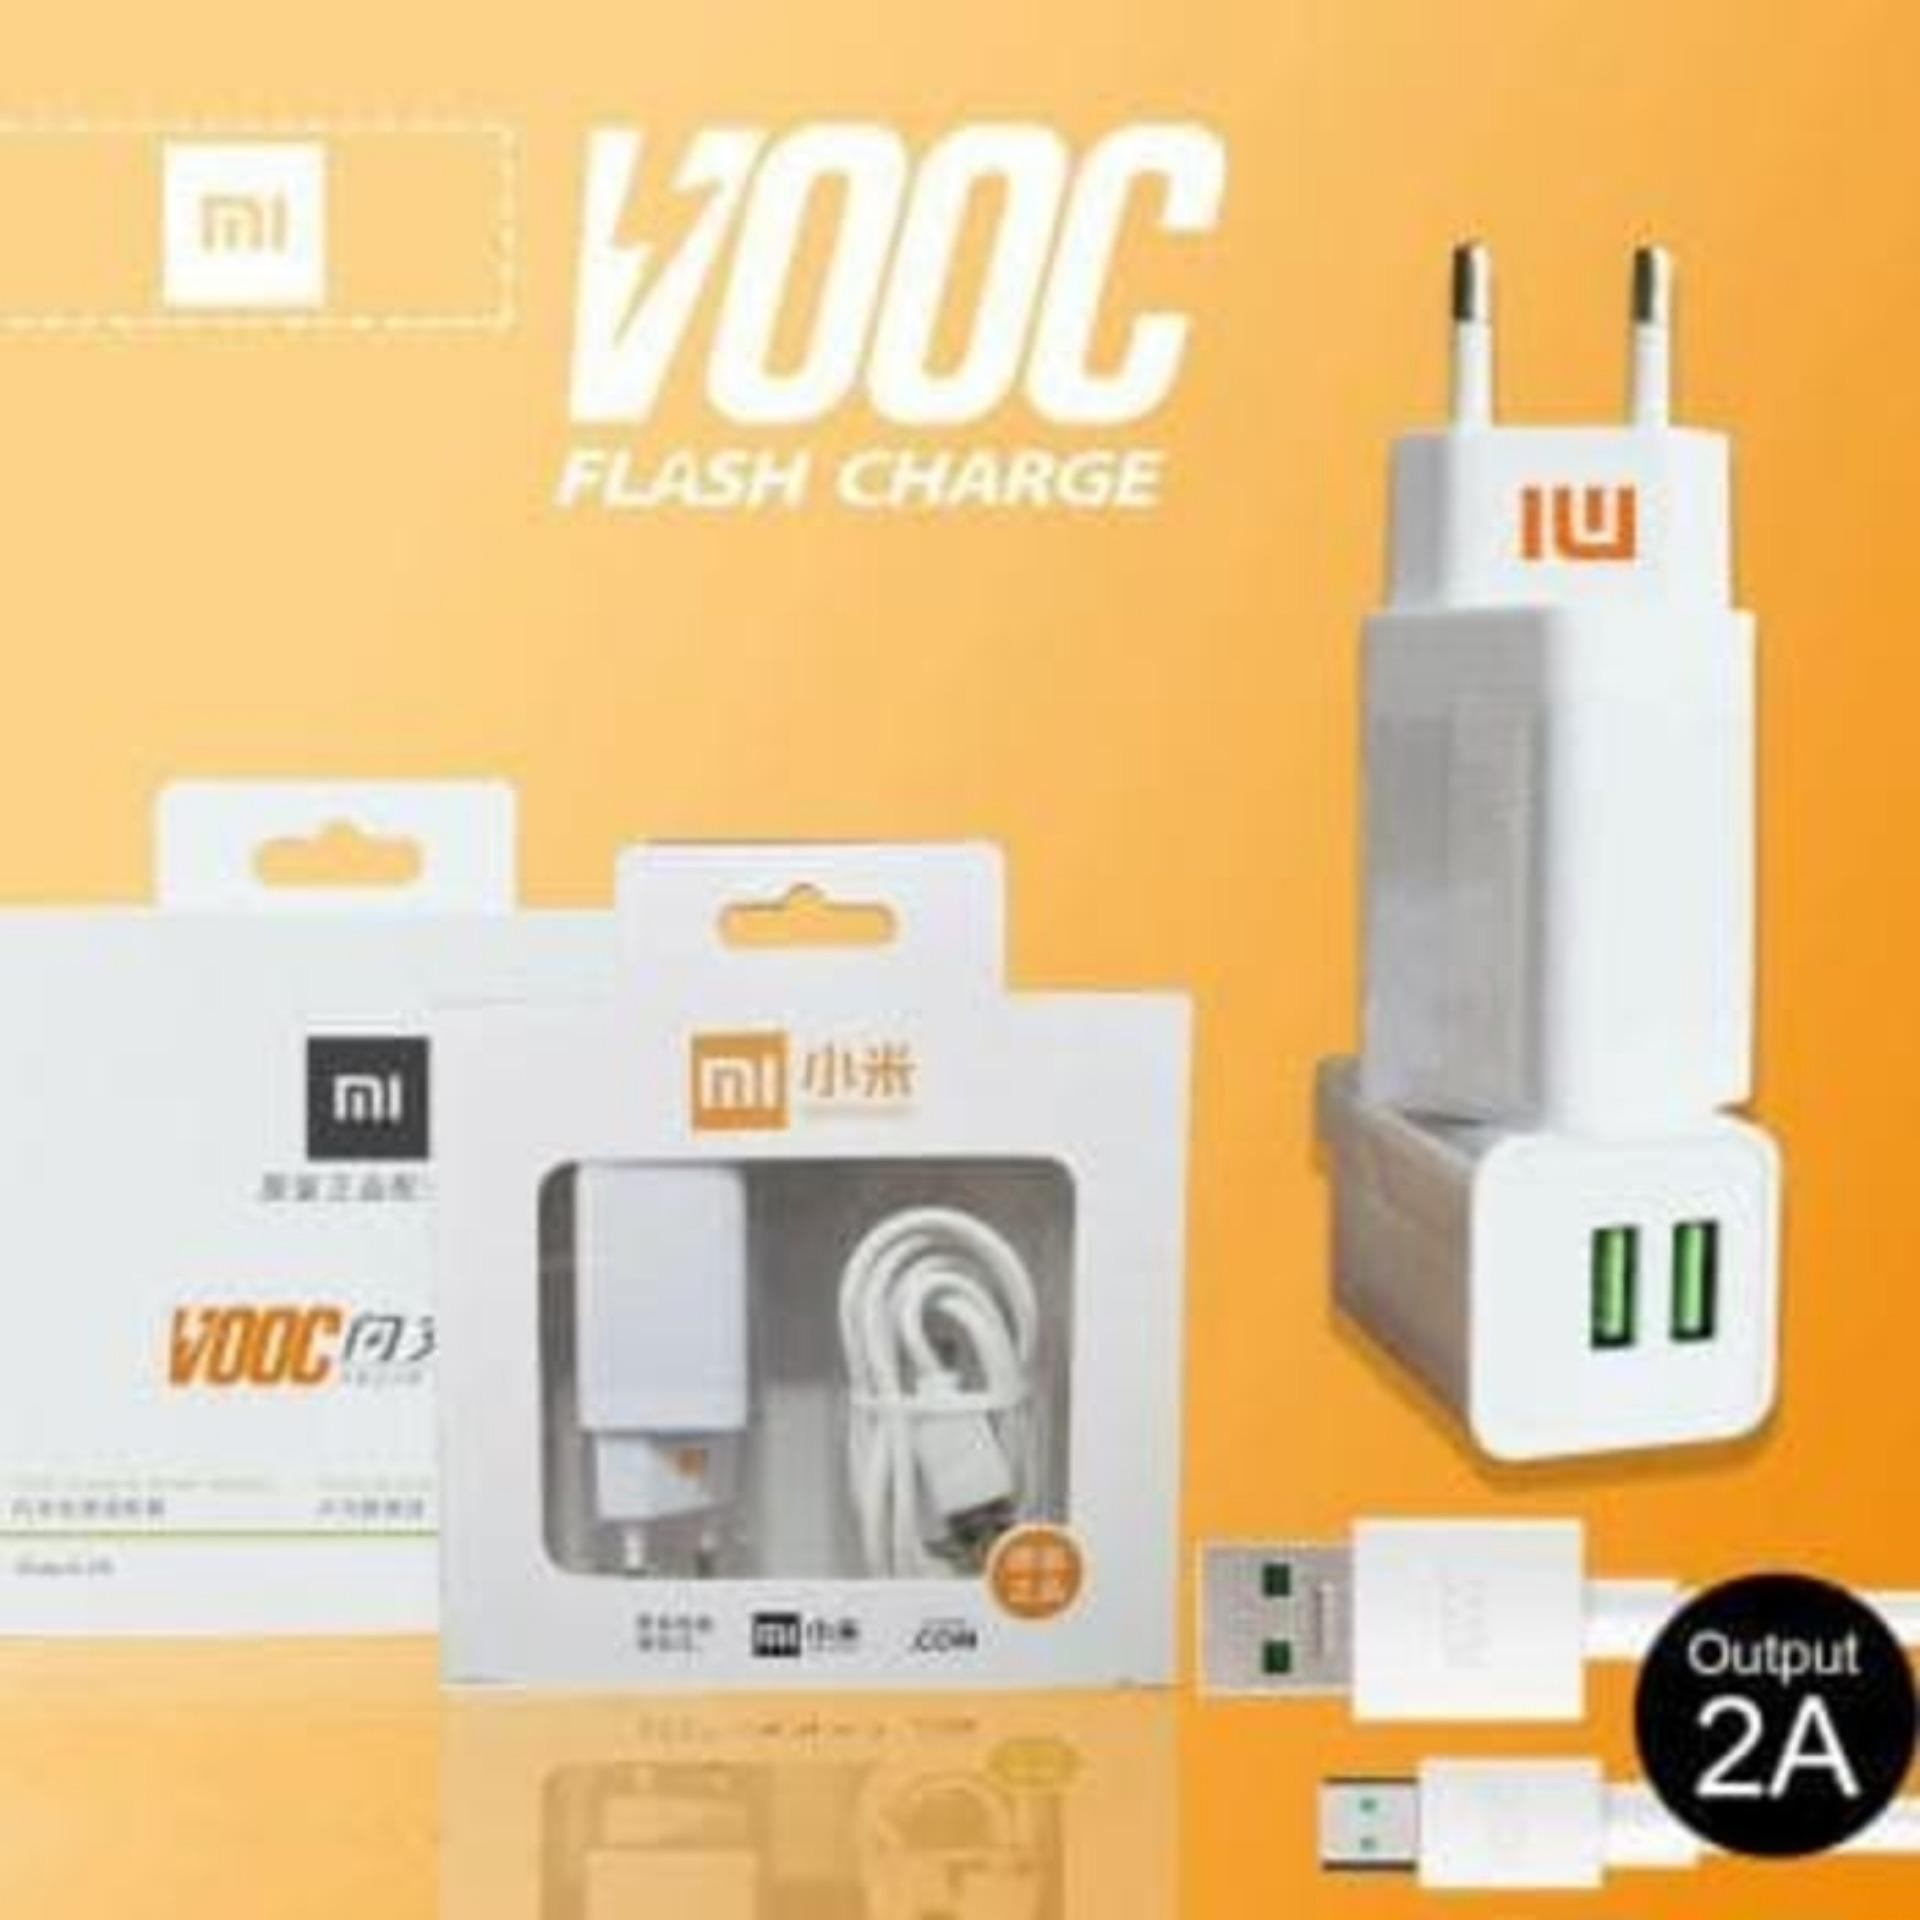 Buy Sell Cheapest Charger Vooc Xiaomi Best Quality Product Deals 1 Get 7 Batok 1a Universal For